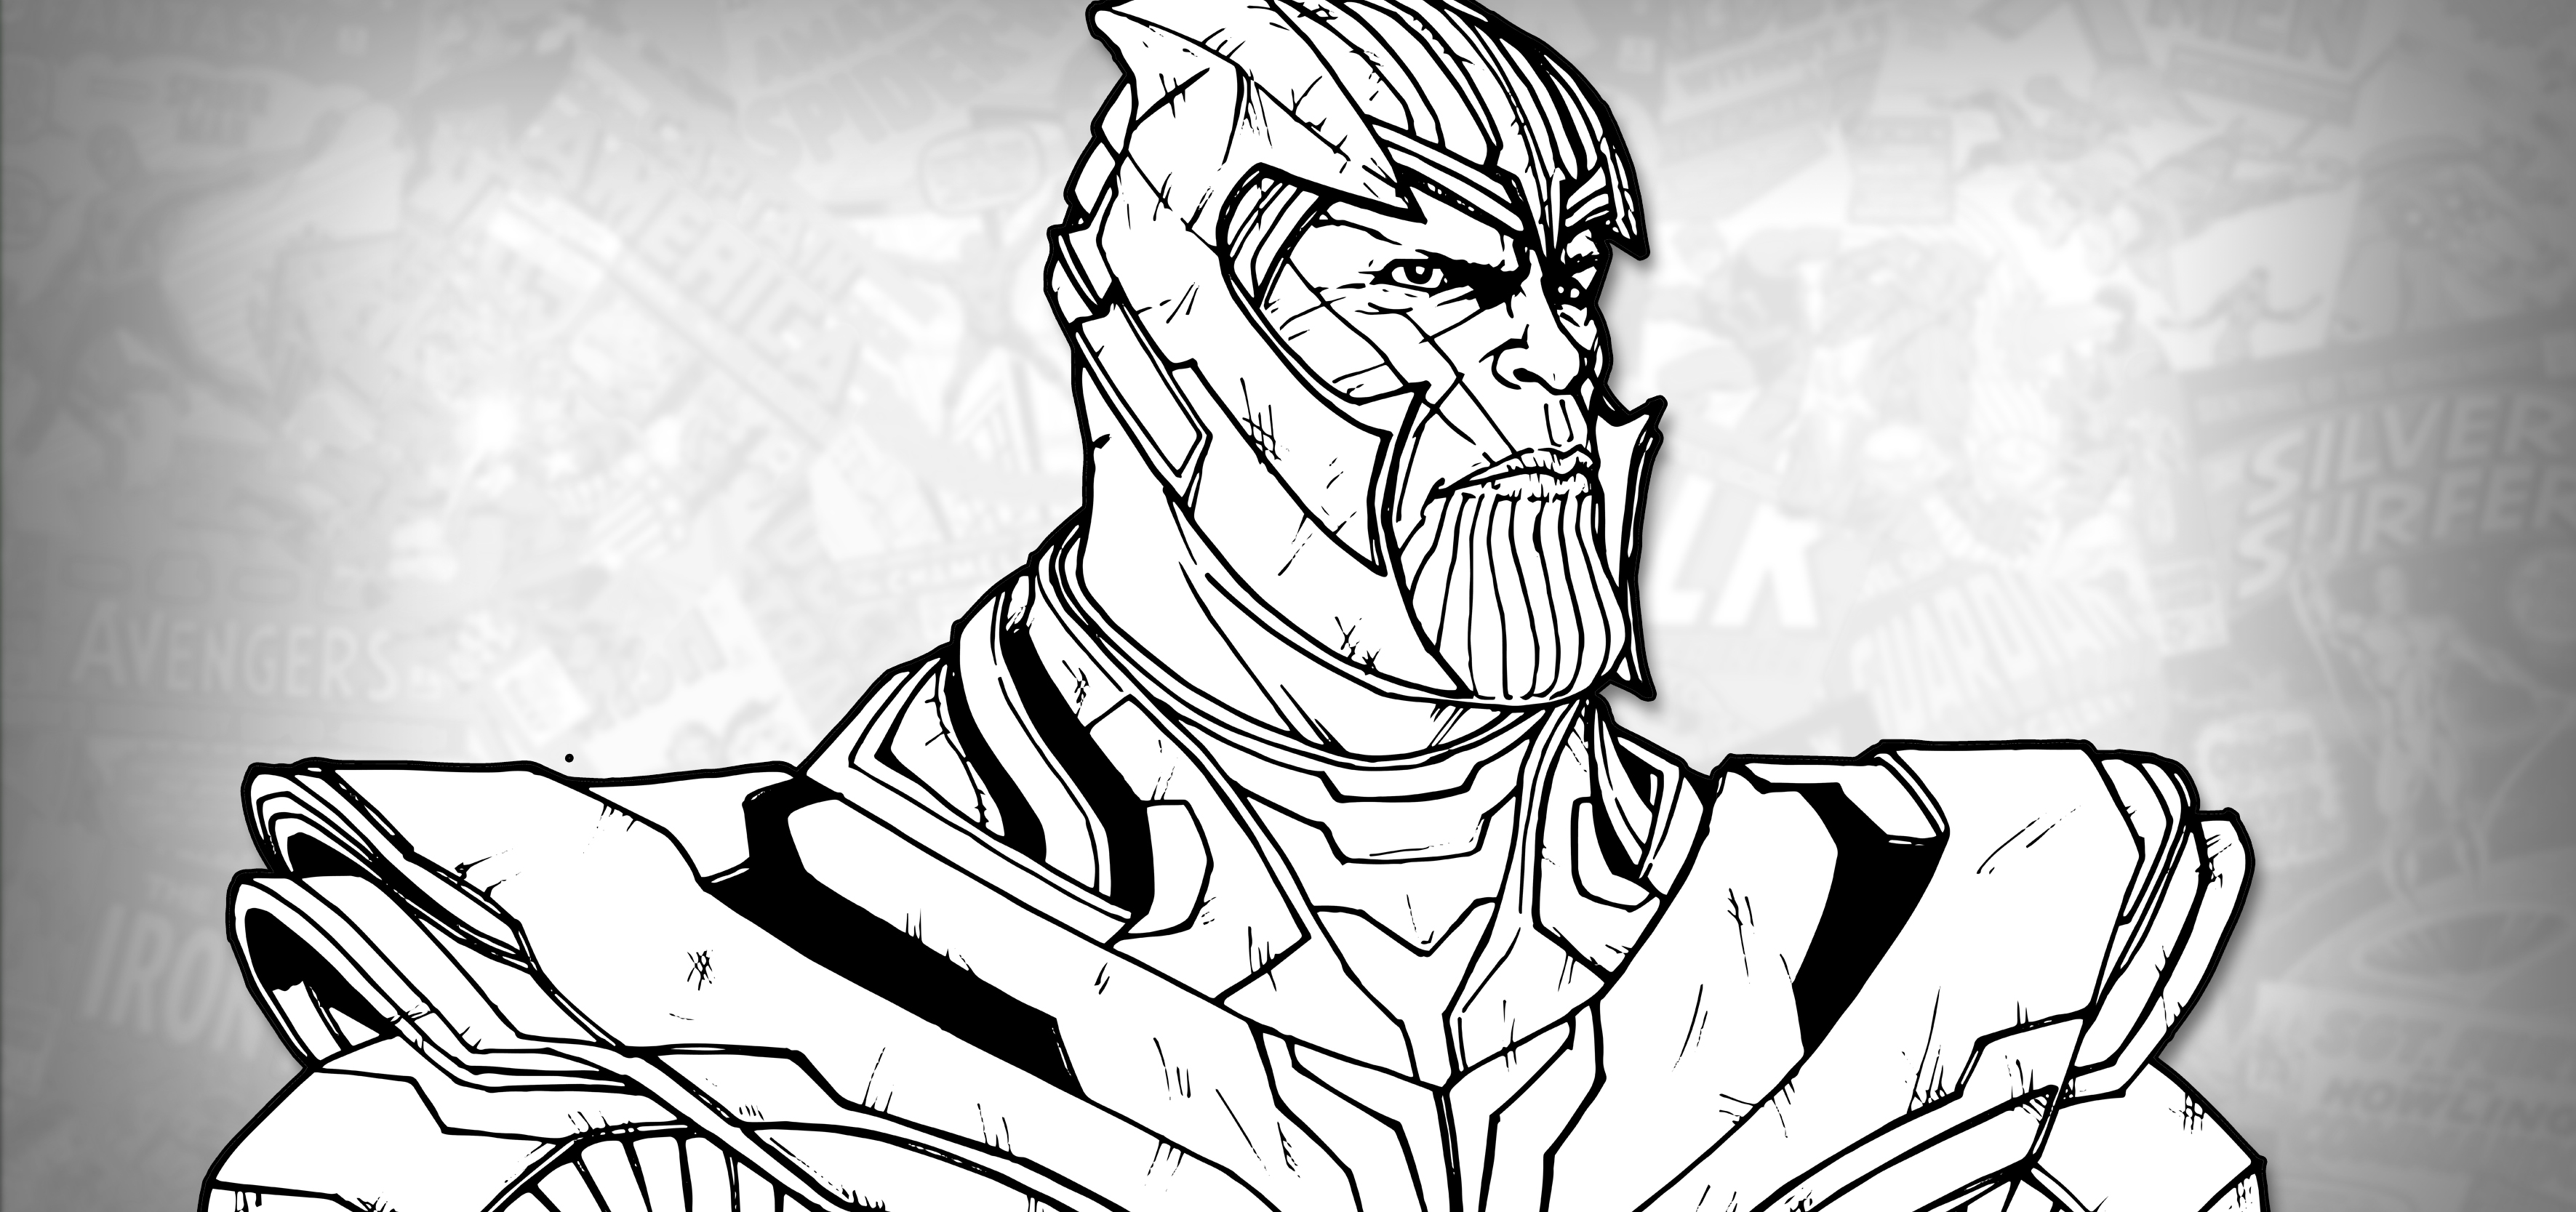 avengers endgame thanos coloring pages how to draw thanos avengers endgame drawing tutorial coloring endgame pages avengers thanos